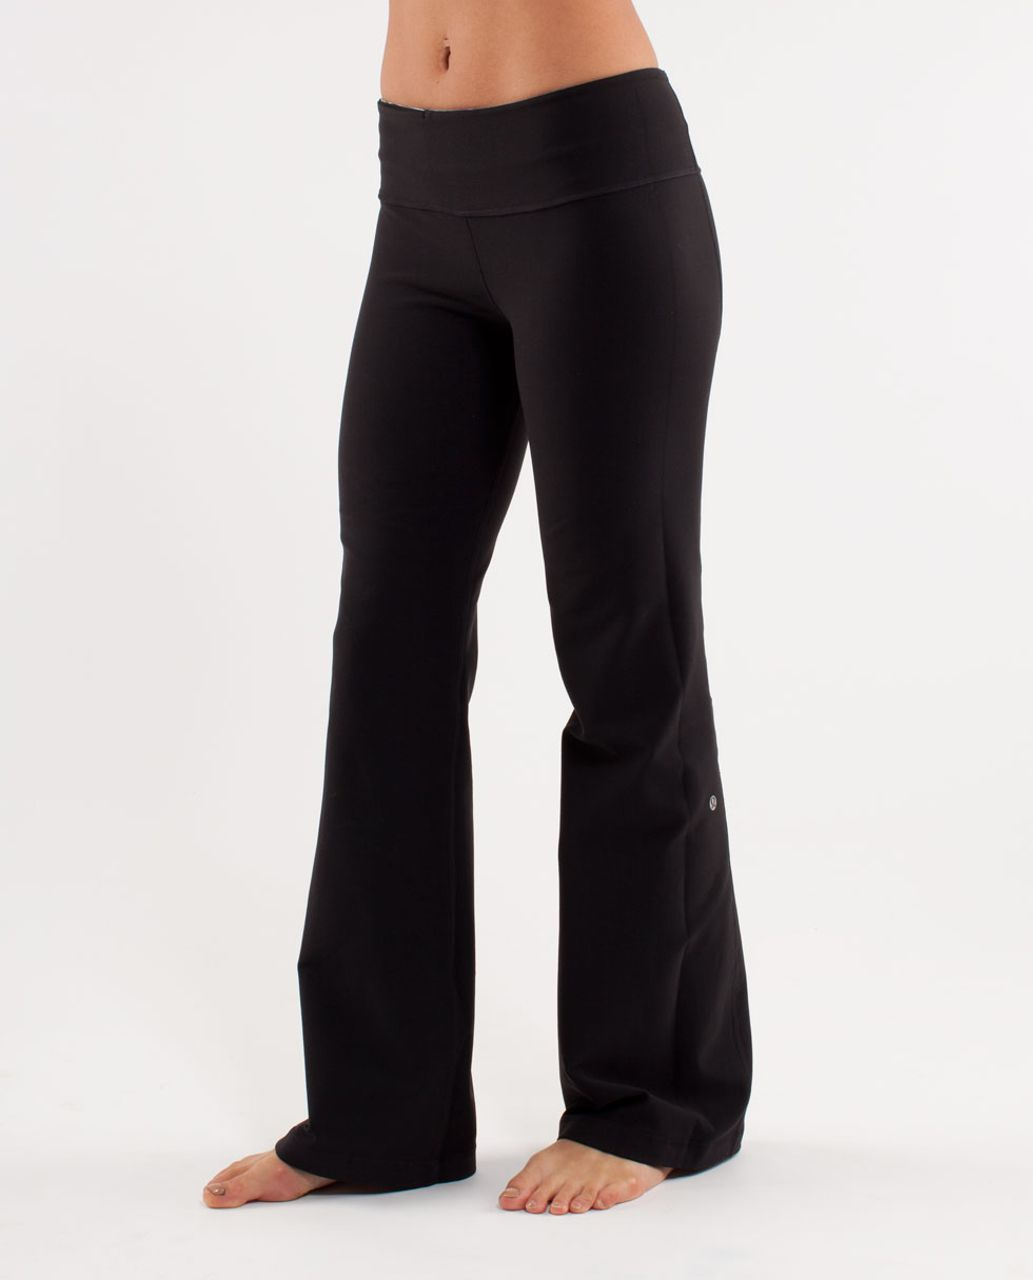 Lululemon Groove Pant (Regular) - Black /  Wee Are From Space Coal Fossil /  Fossil